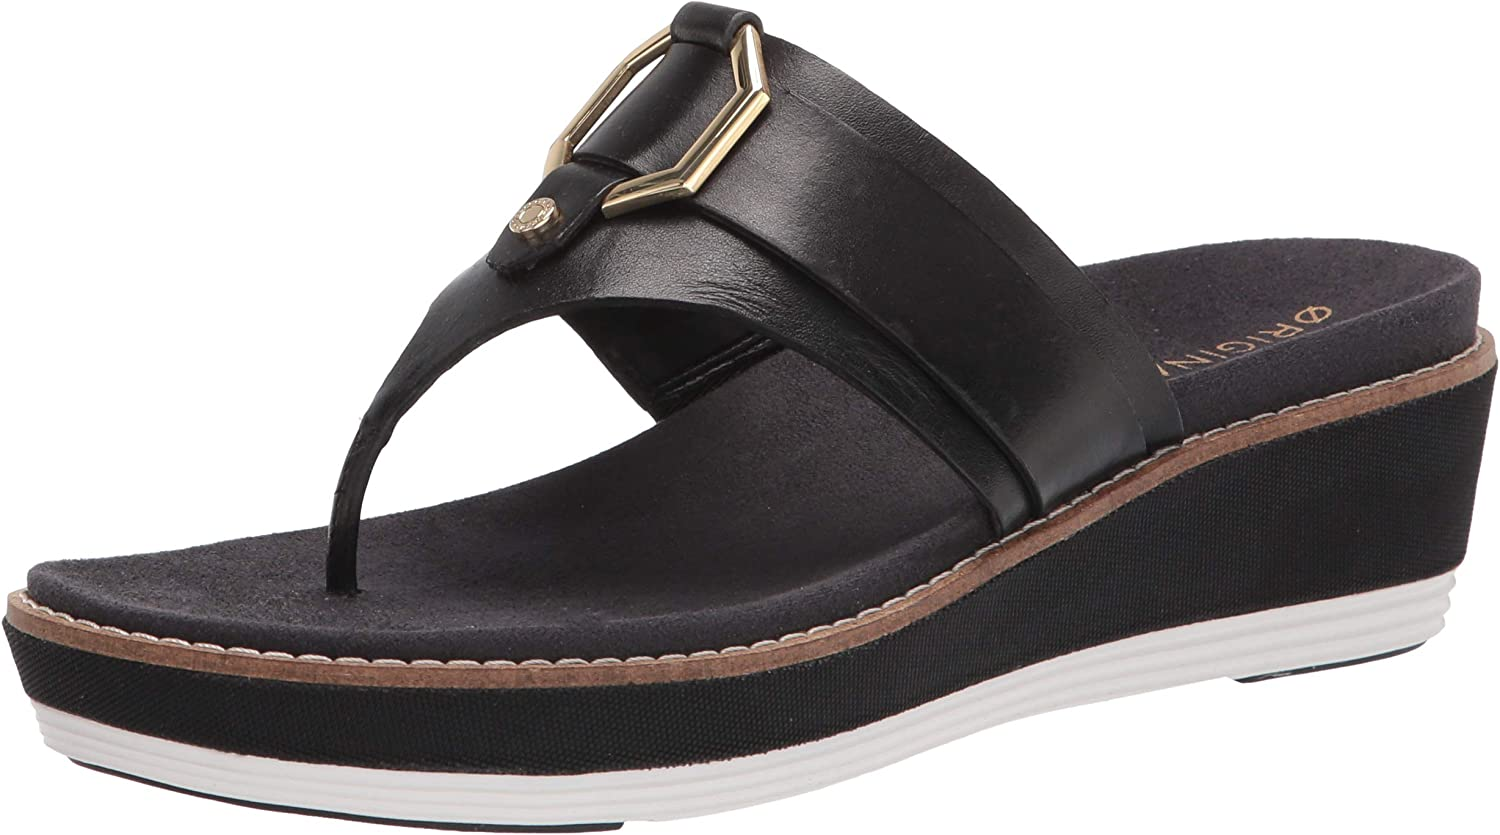 Cole Max 79% OFF Courier shipping free Haan Women's Originalgrand Thong Wedge Flatform Sandal